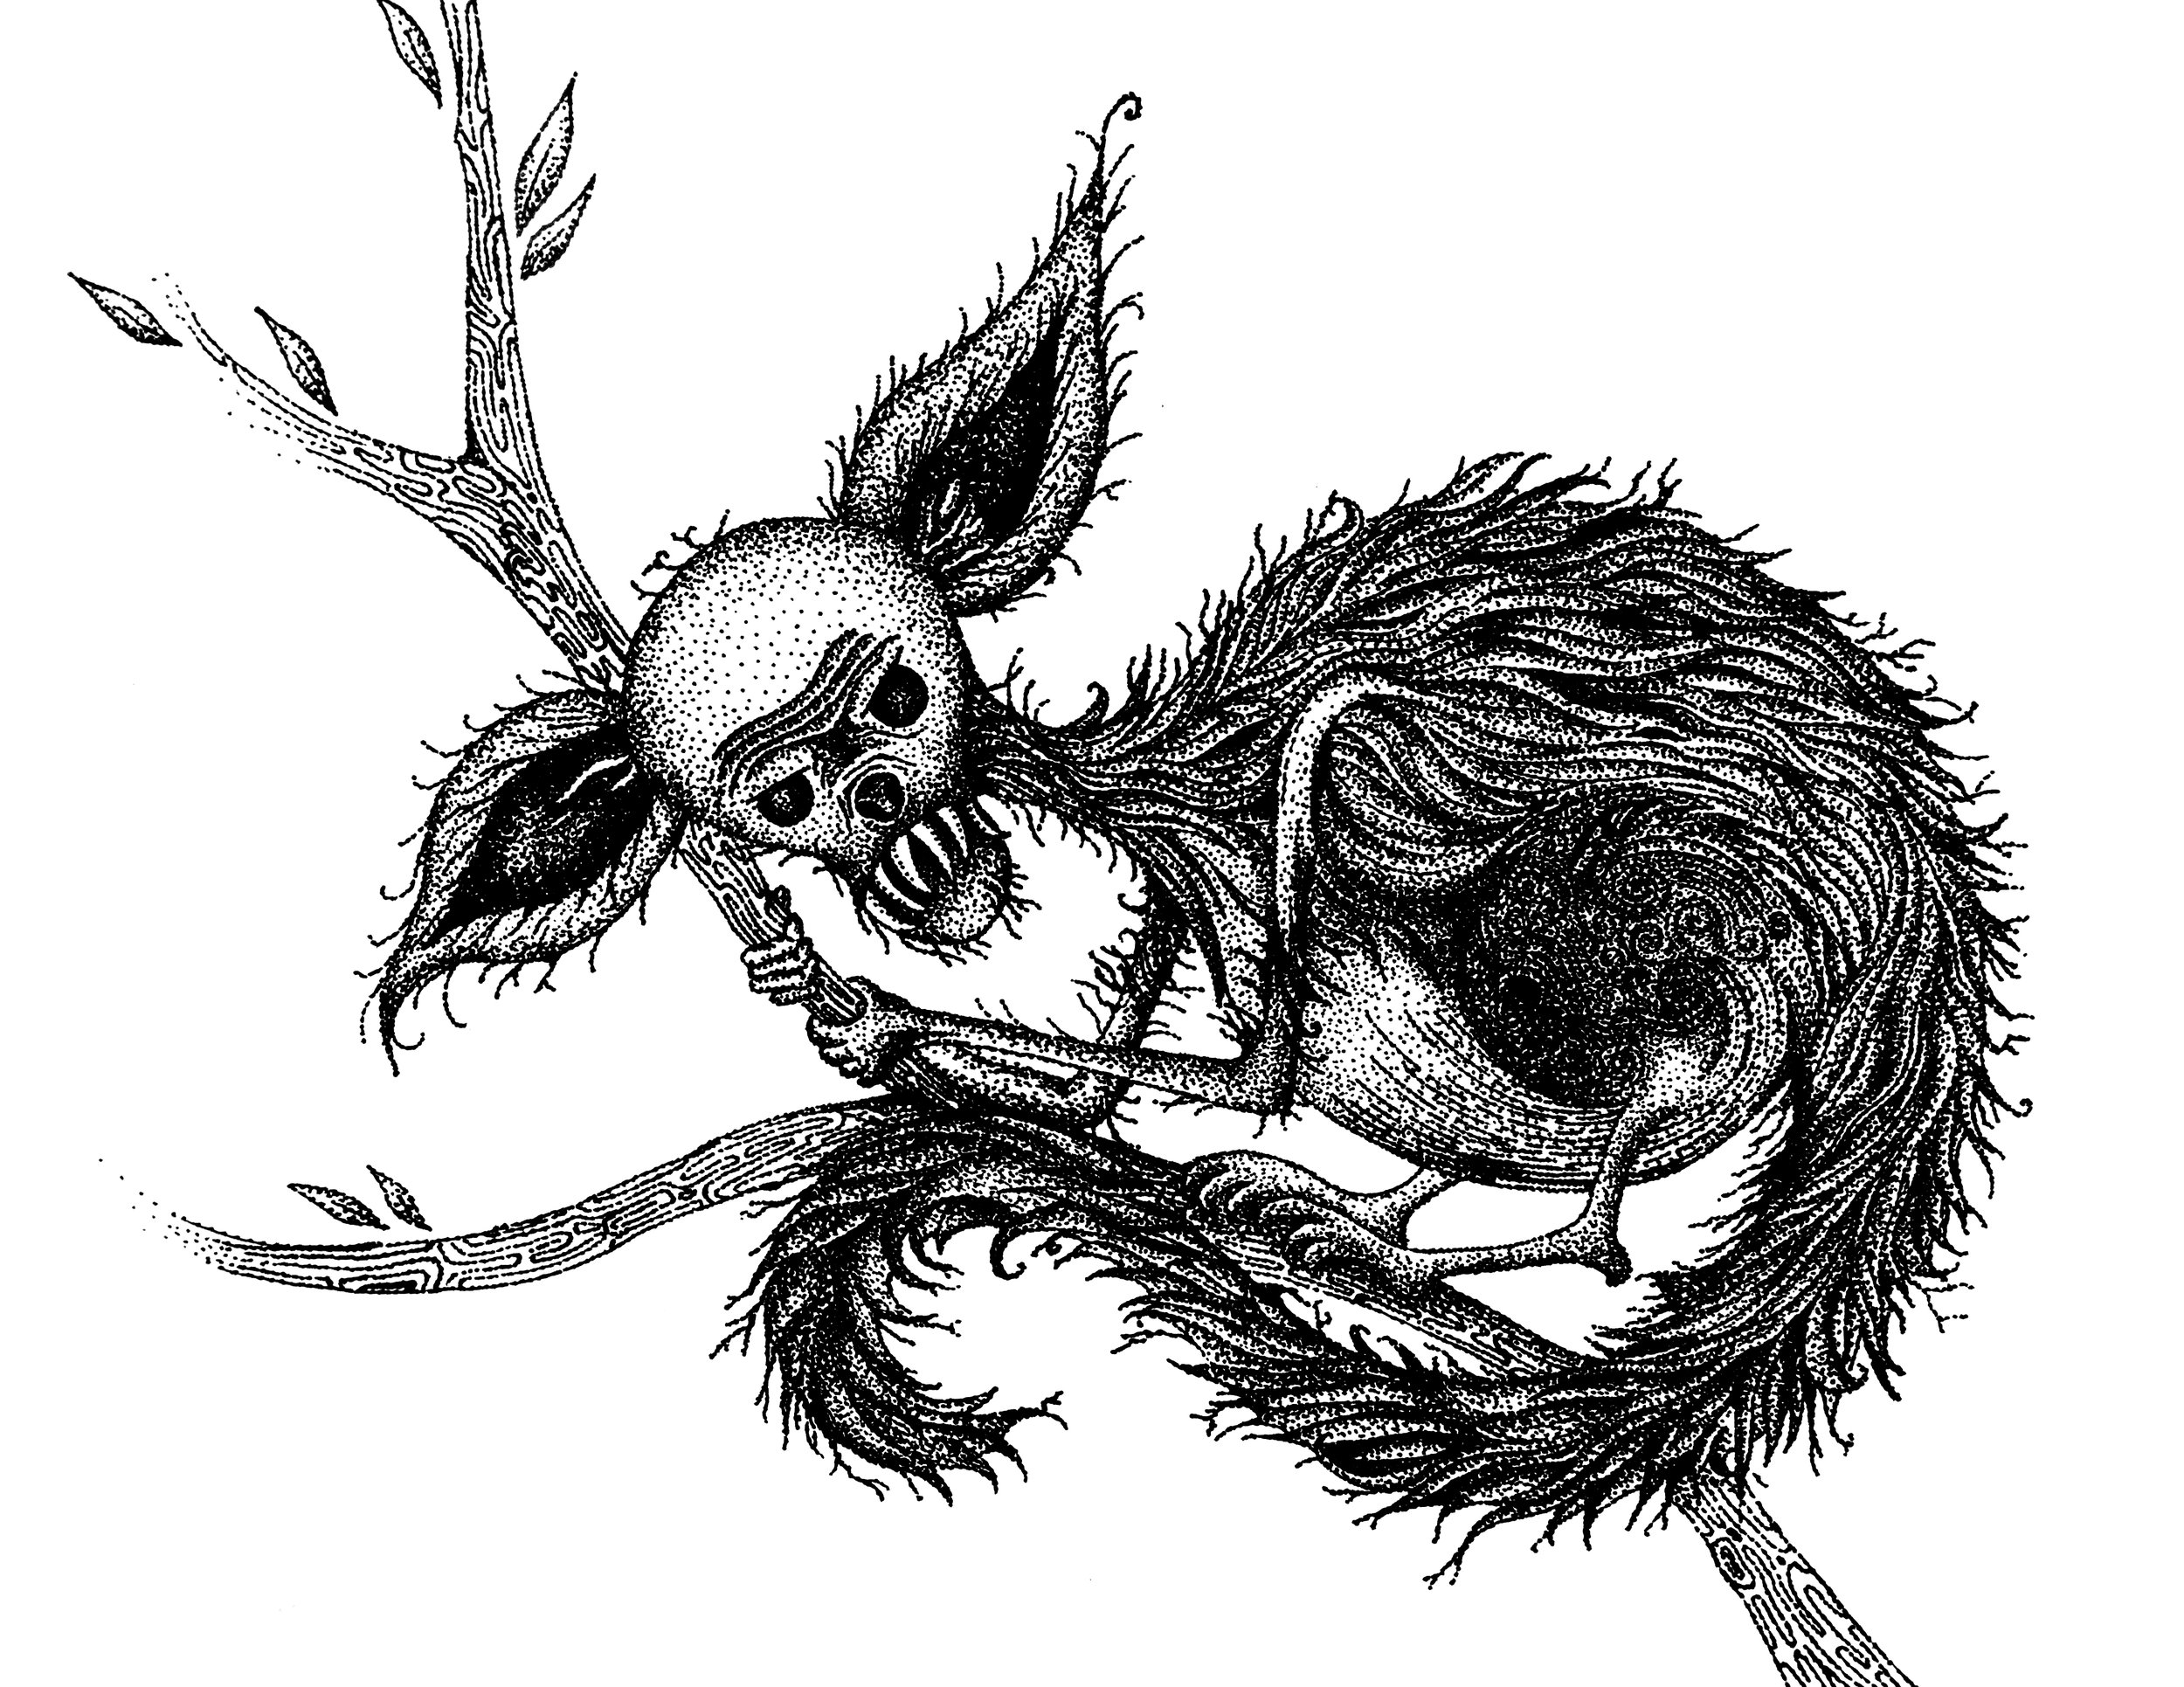 A minket sitting on a branch, with big ears, long tail, wiry fur done in pointilism.